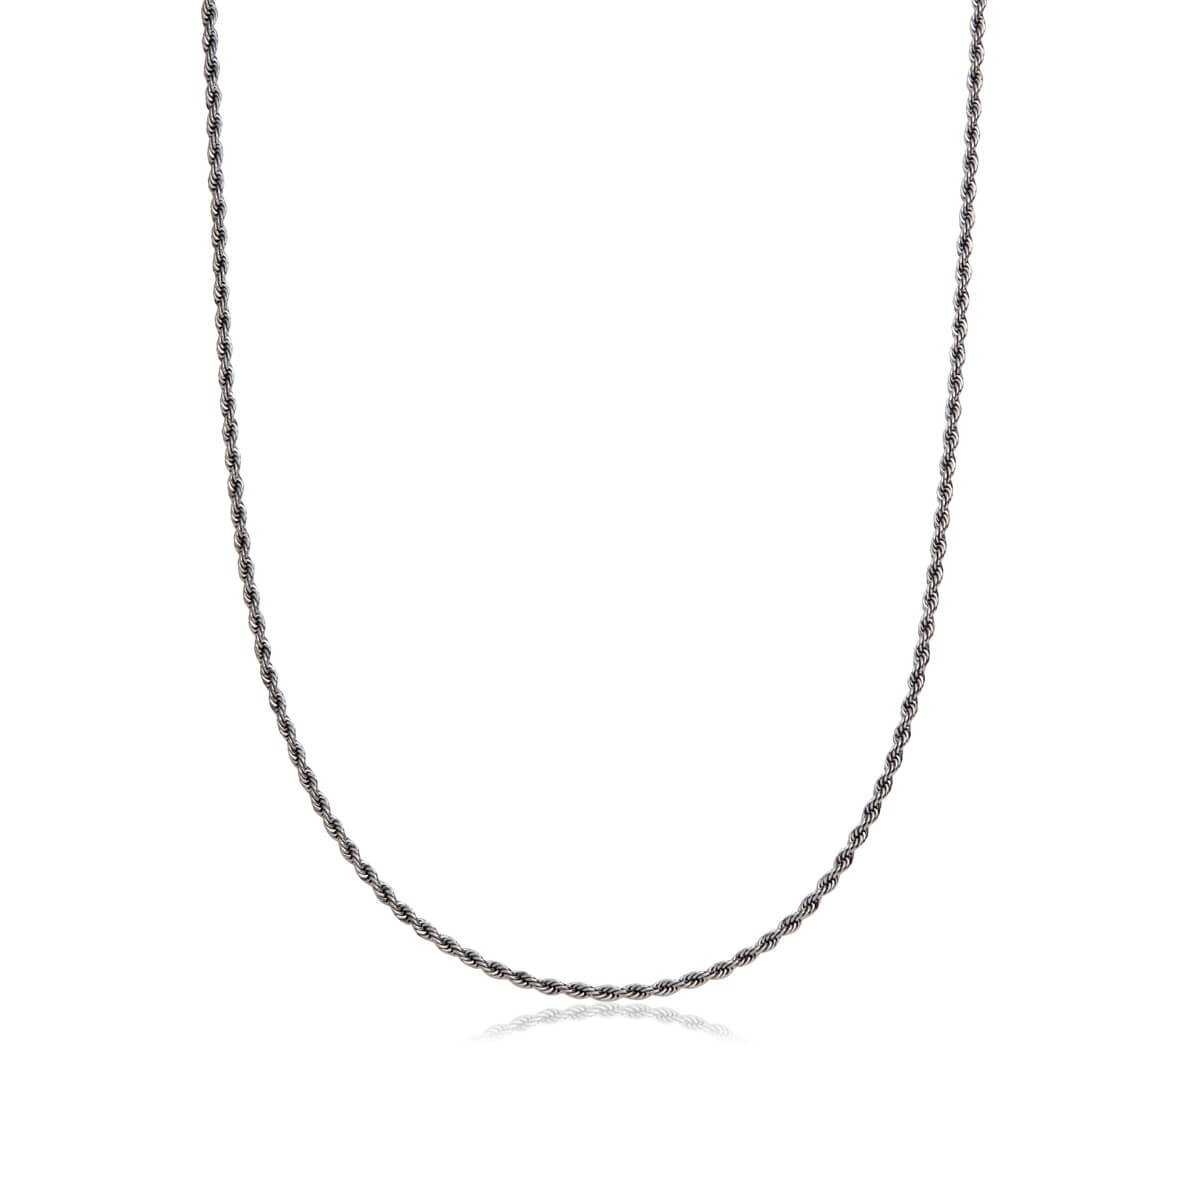 Rope Chain Necklace 20 in (Gun Silver)